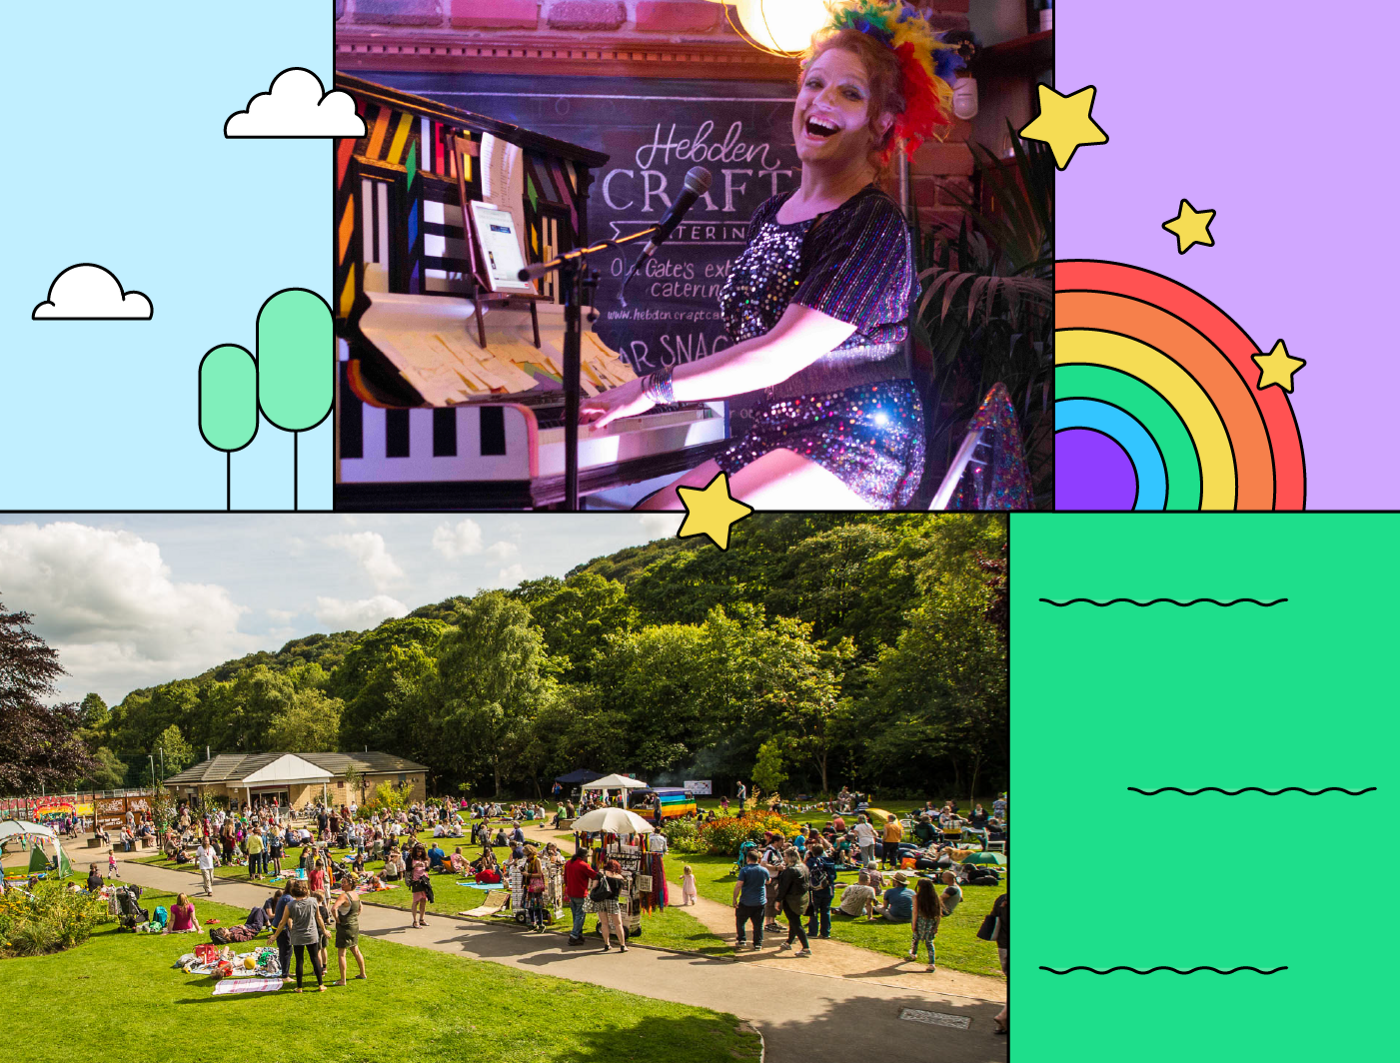 In Hebden Bridge in Northern England, Happy Valley Pride  hosts an annual, weeklong festival to celebrate queer culture.